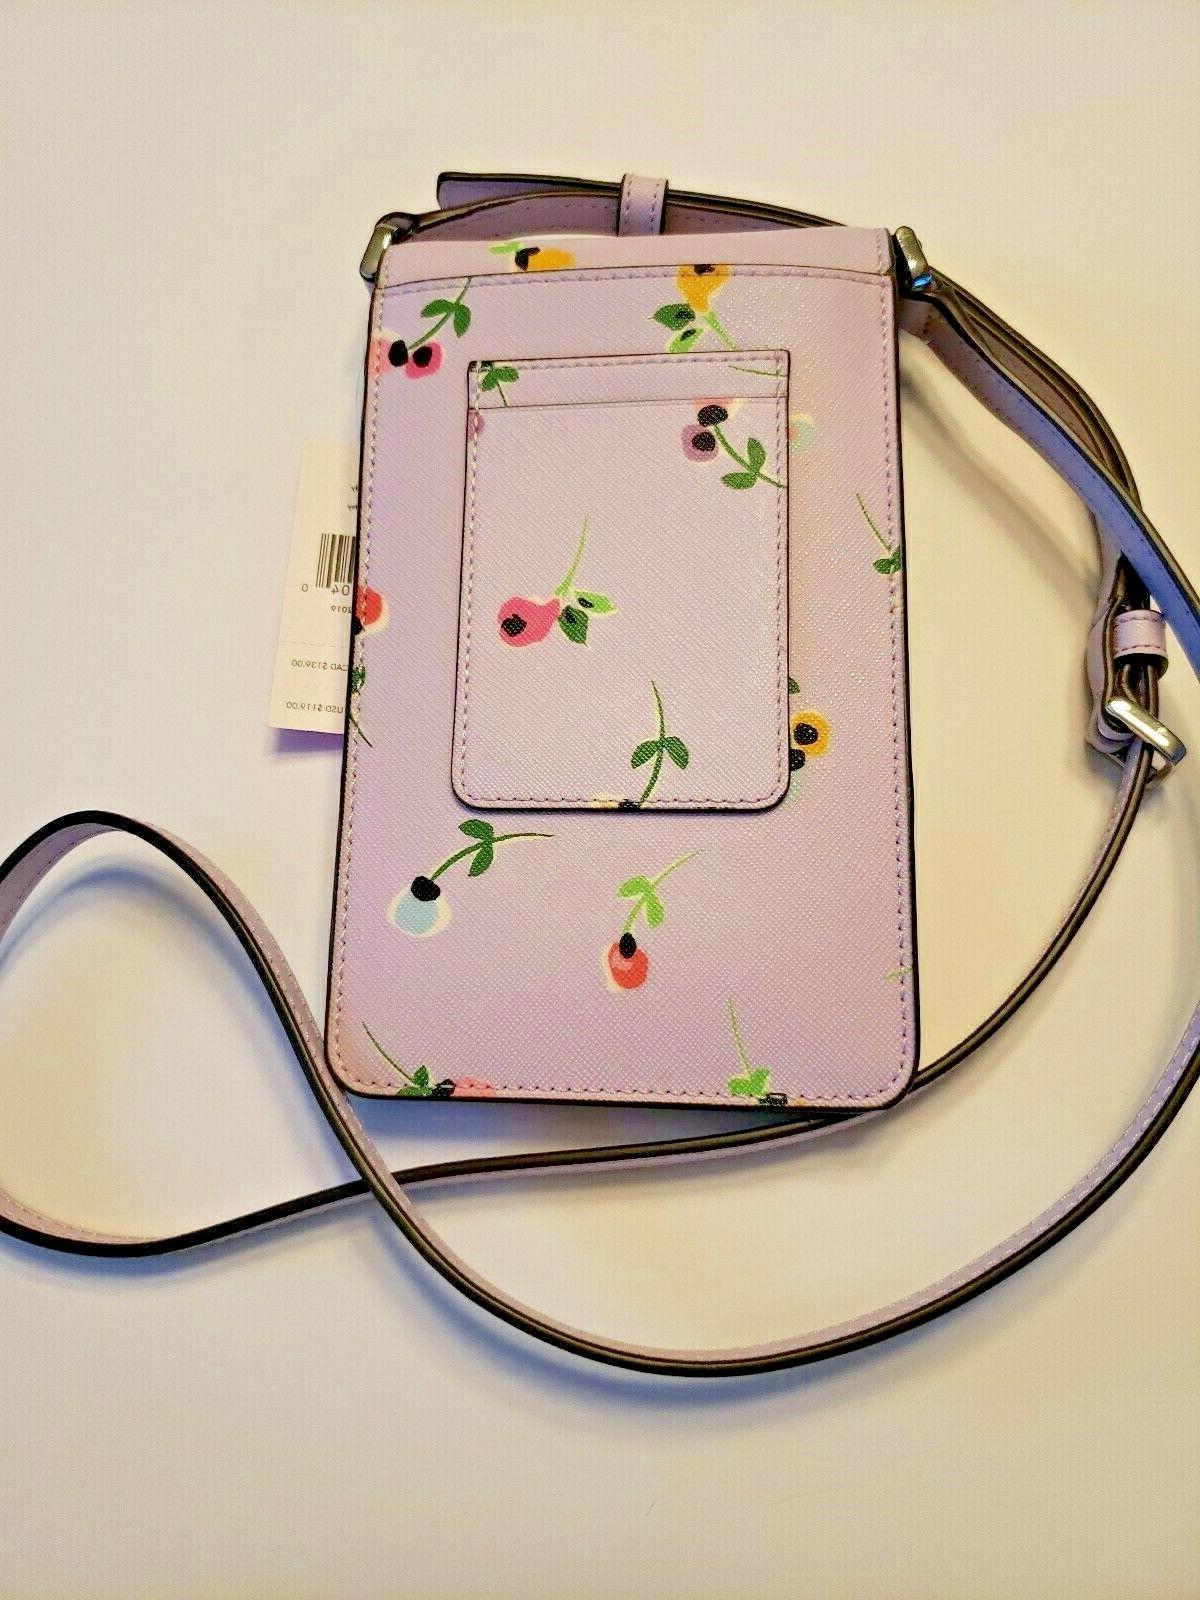 NEW SPADE North South Phone Crossbody Bag Purse Cameron Ditsy